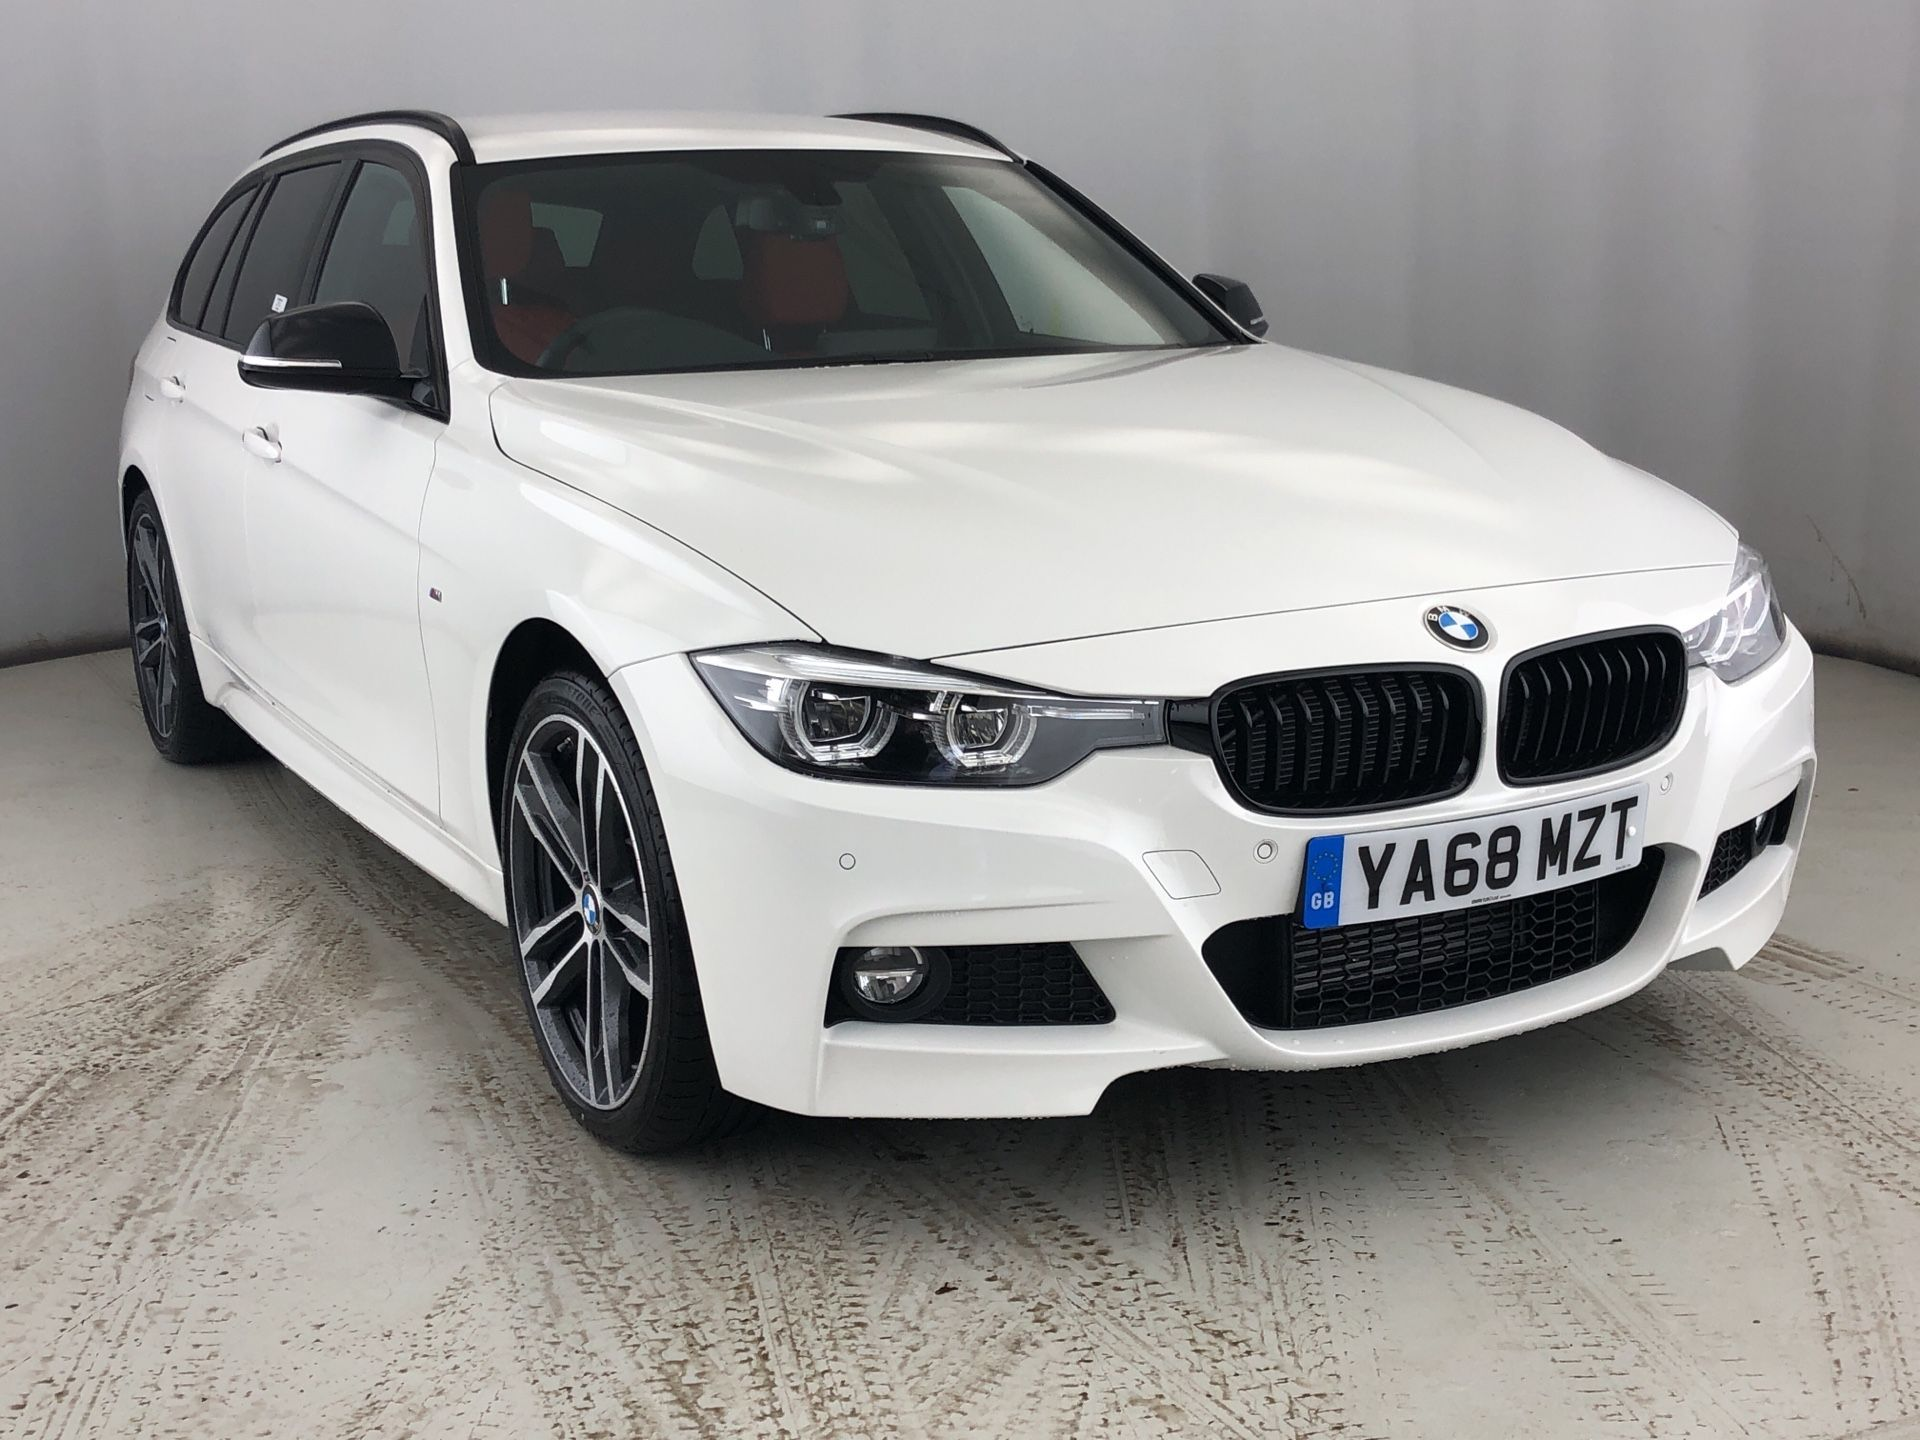 Image 1 - BMW 320d xDrive MSport ShadowEdition Touring (YA68MZT)